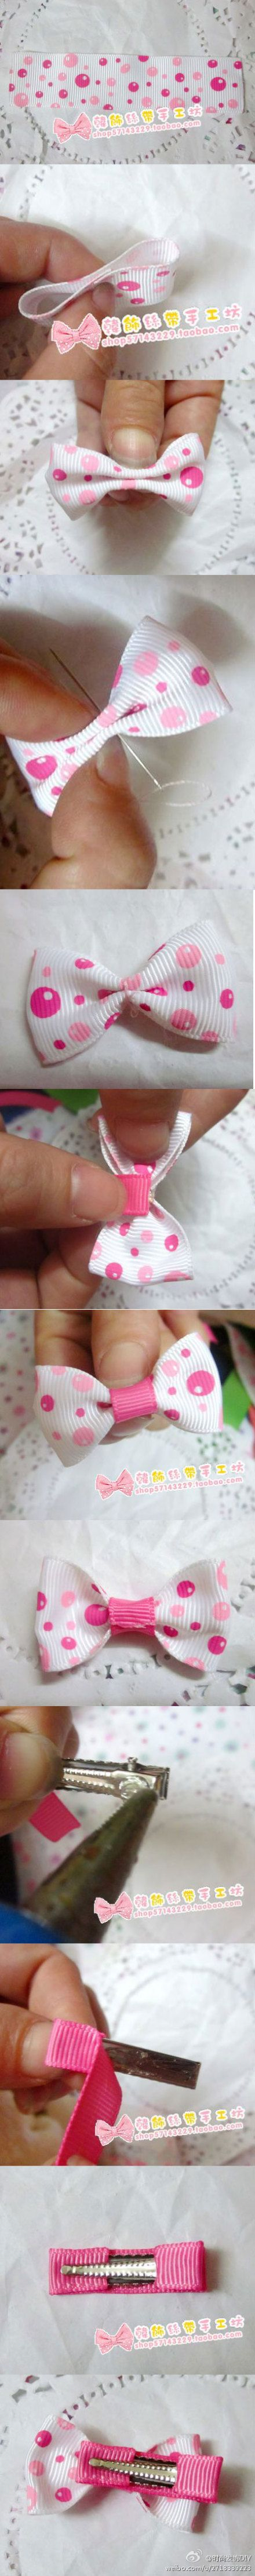 You don't need to understand Chinese for this simple craft!